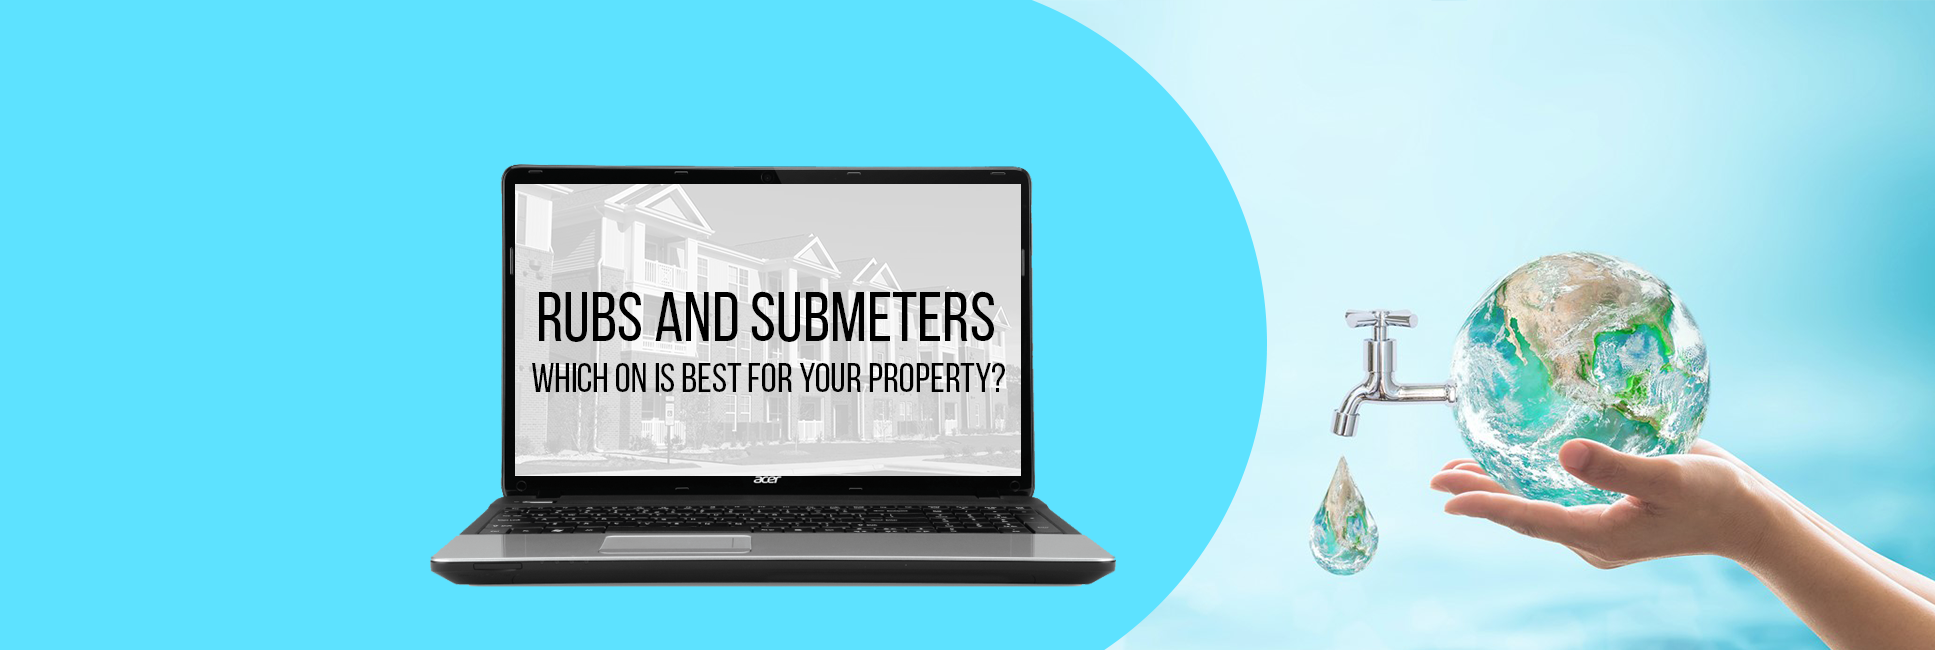 RUBS or Submetering. What is best for your property?